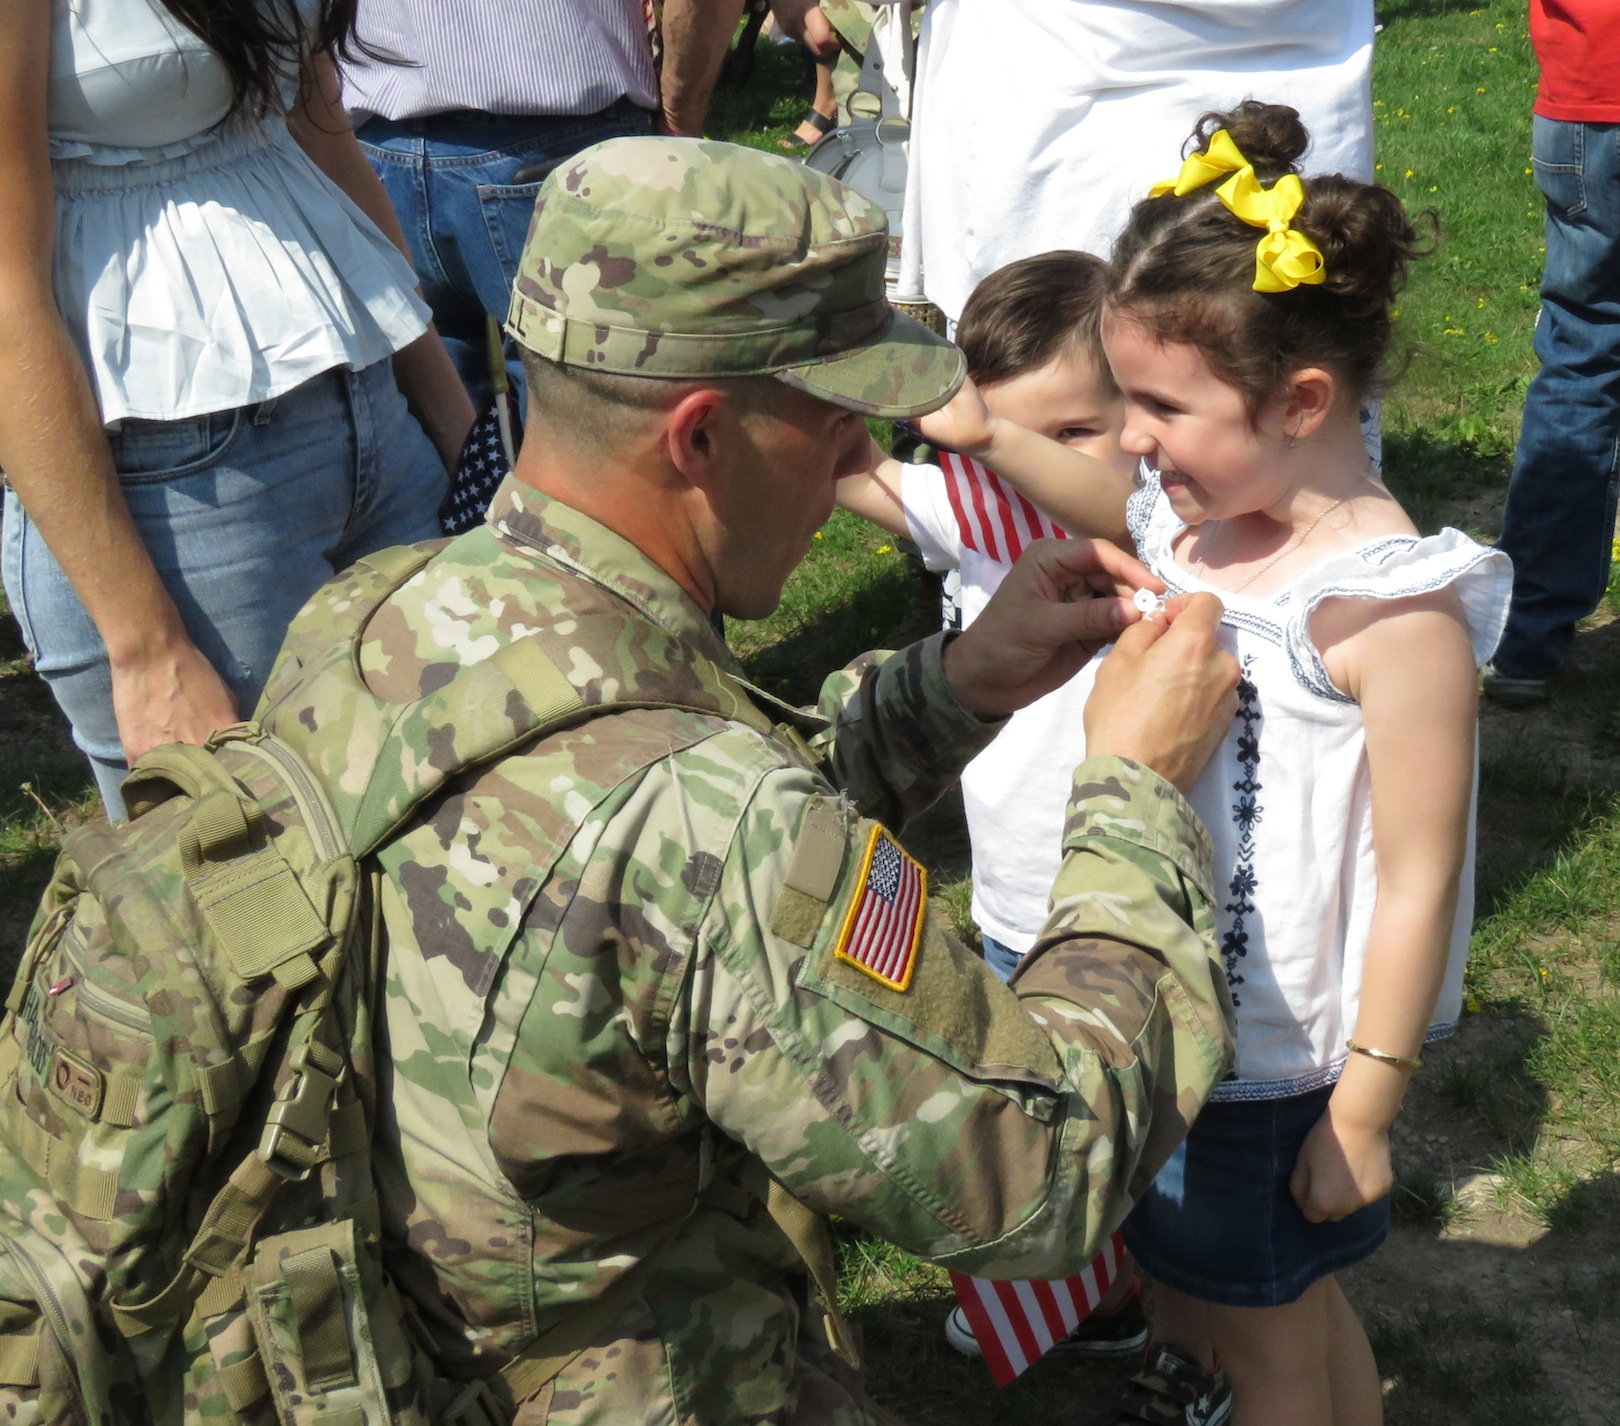 This little girl was quite happy to see her father return home. (Photo by David Yarger)